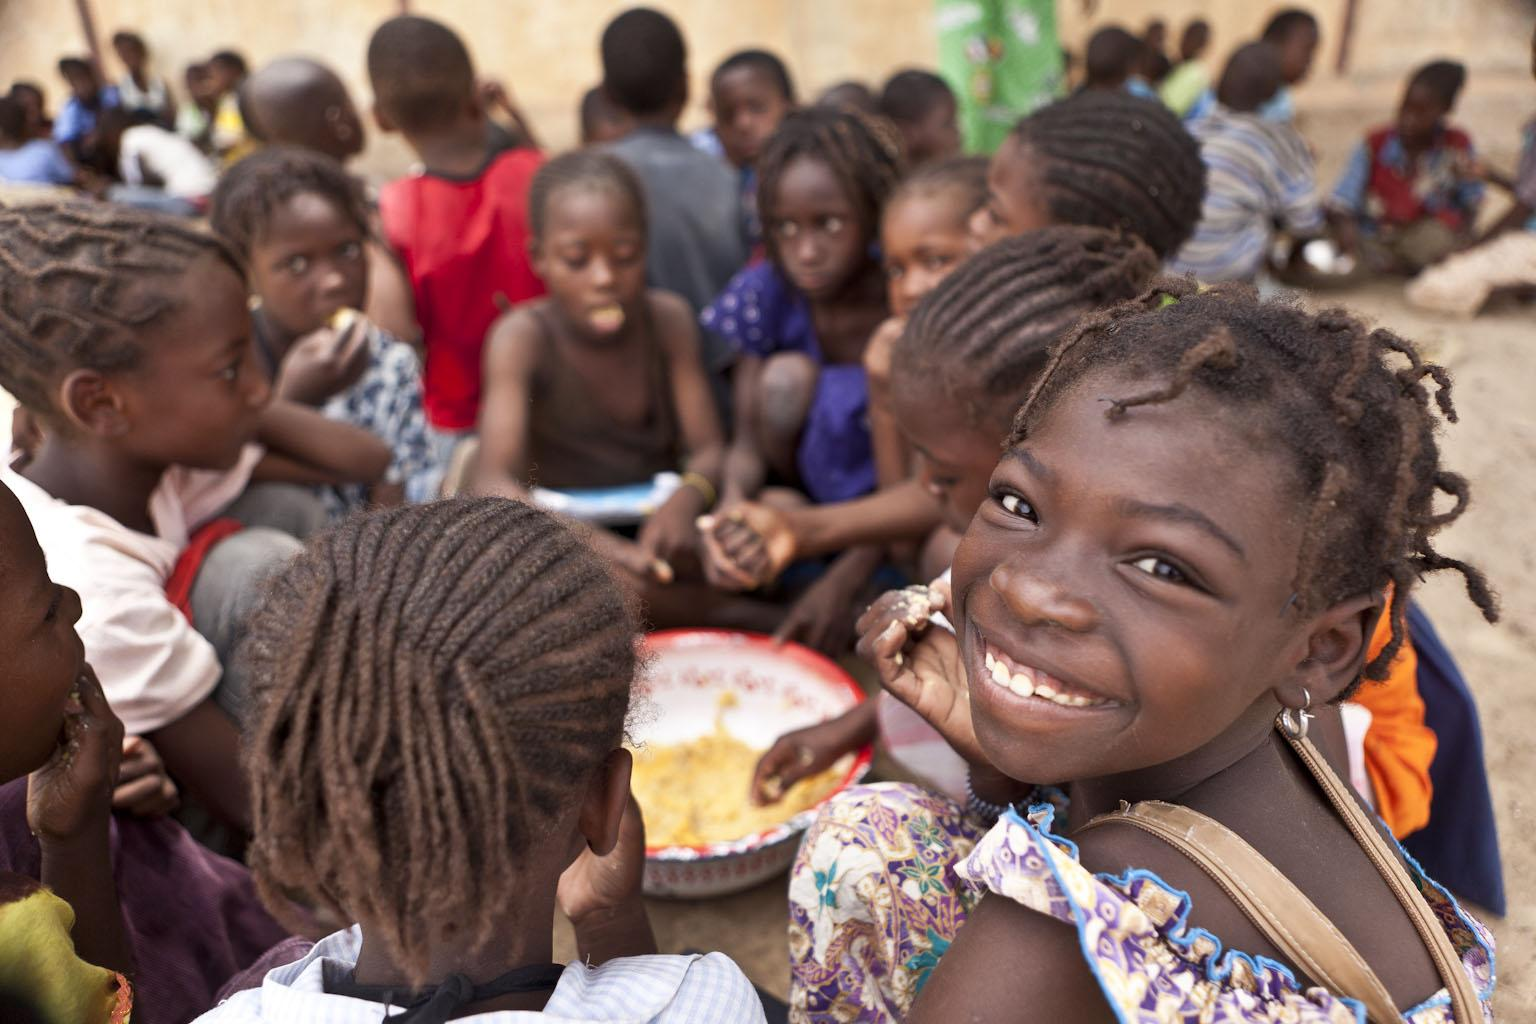 Children in Mali eat the midday meal offered at their school.